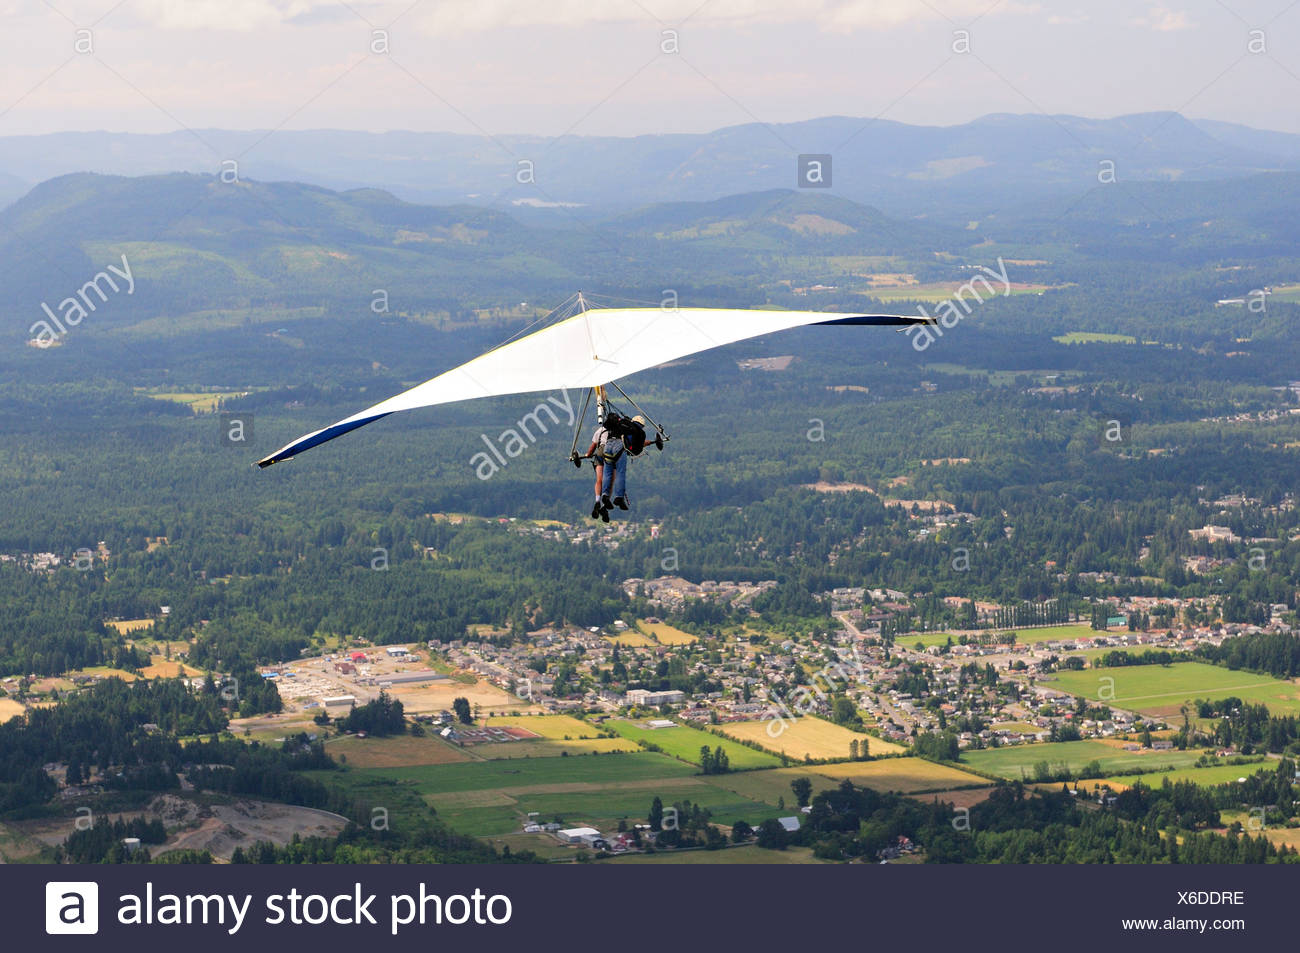 Two guys in a tandem hang glider near Mt. Prevost in Duncan, BC. - Stock Image